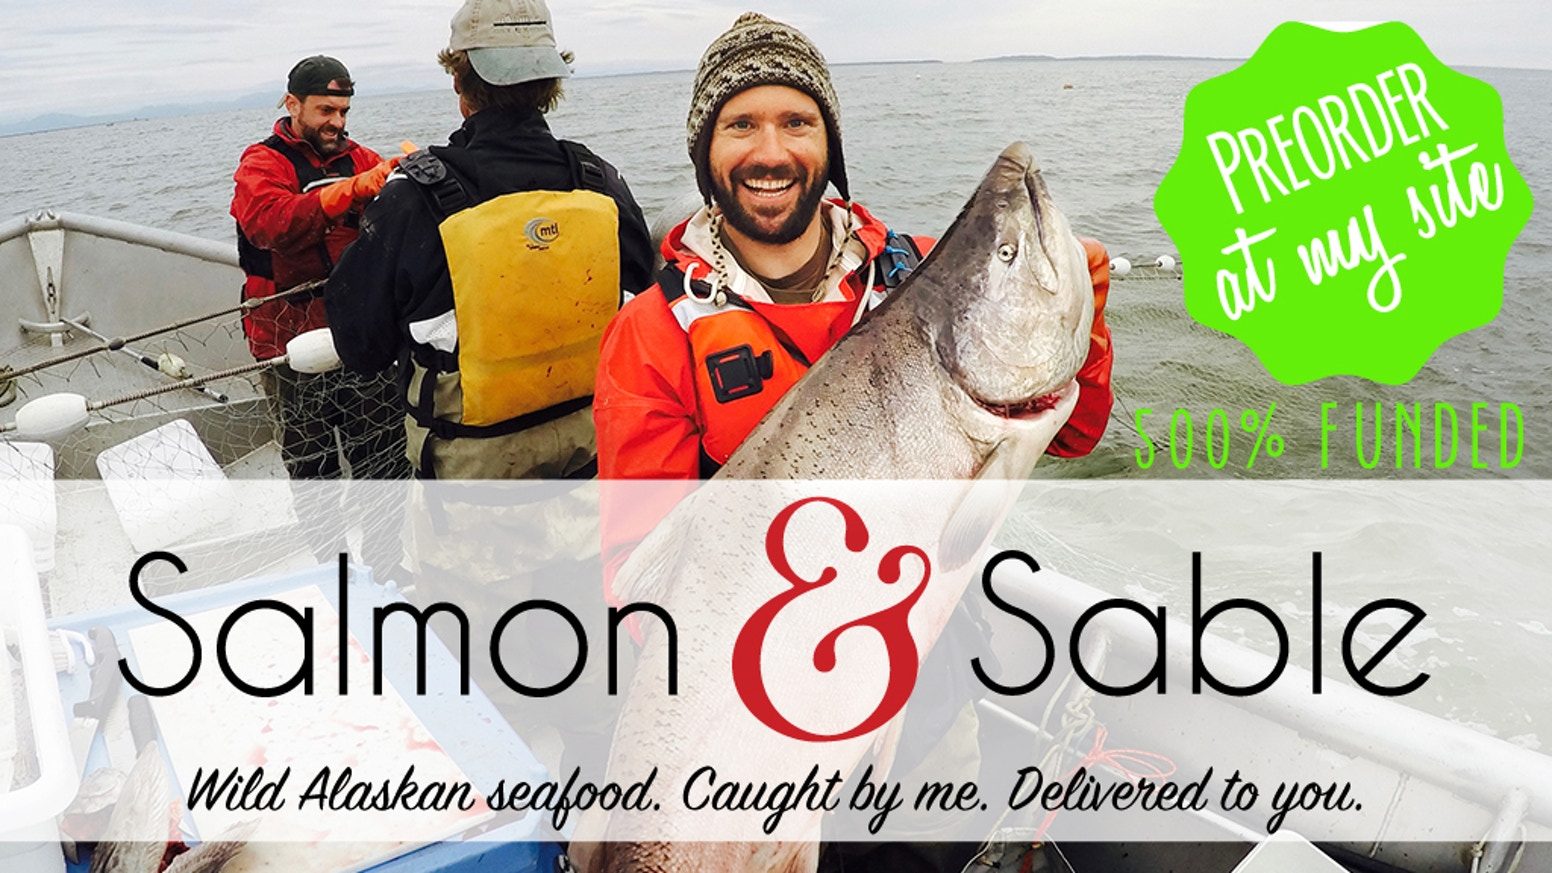 Preorder a Share of my catch. I'll catch it and ship it to your door. If you love Alaskan seafood, I'd like to be your fisherman.